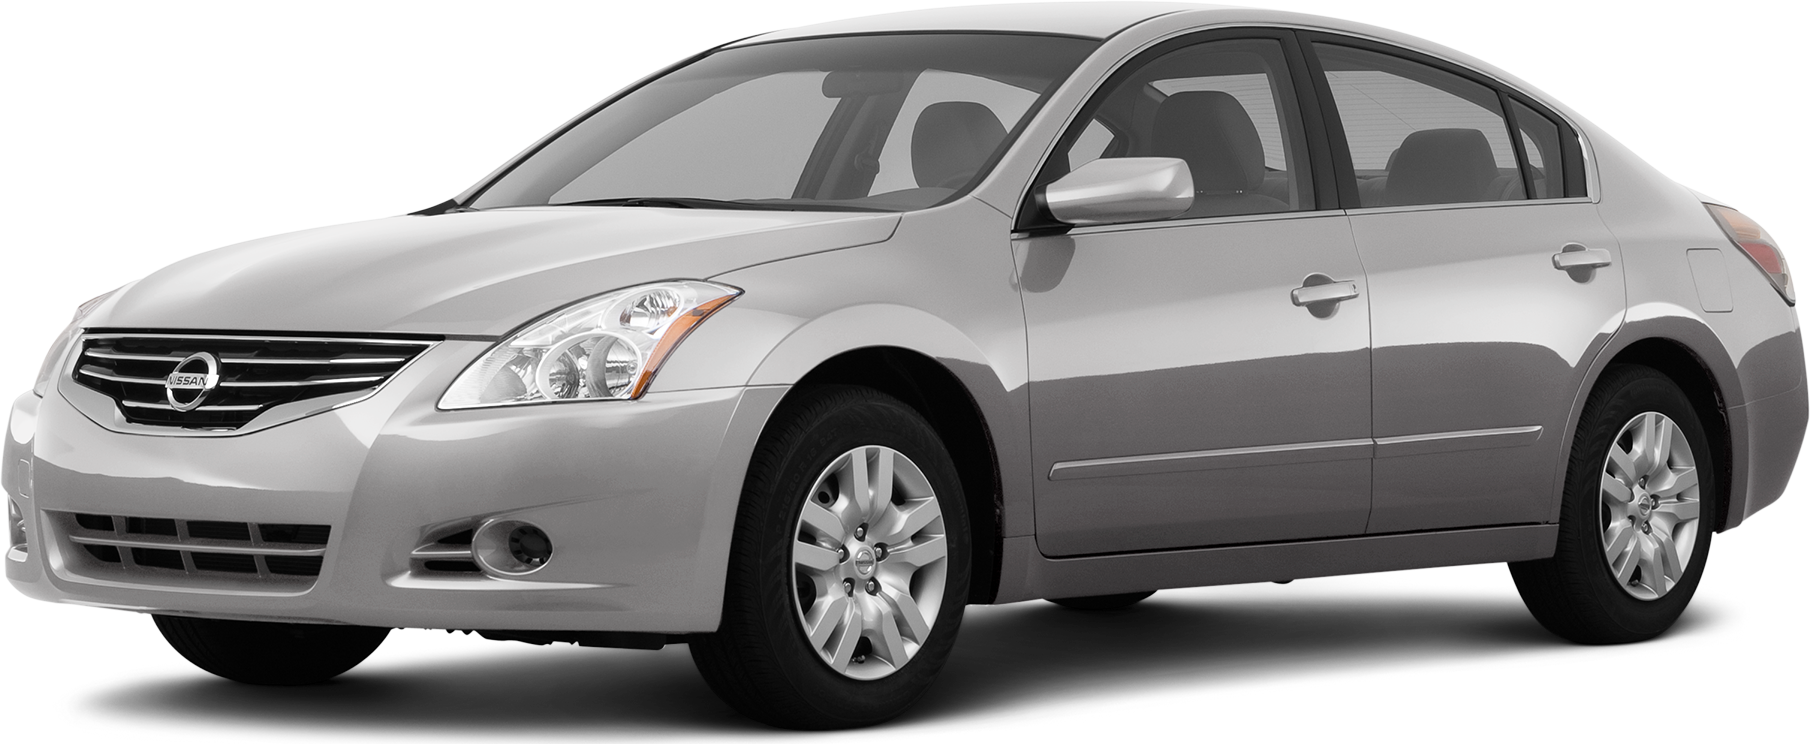 New Set of 3 Auto Body Repairs Front Sedan for Nissan Altima 2010-2012